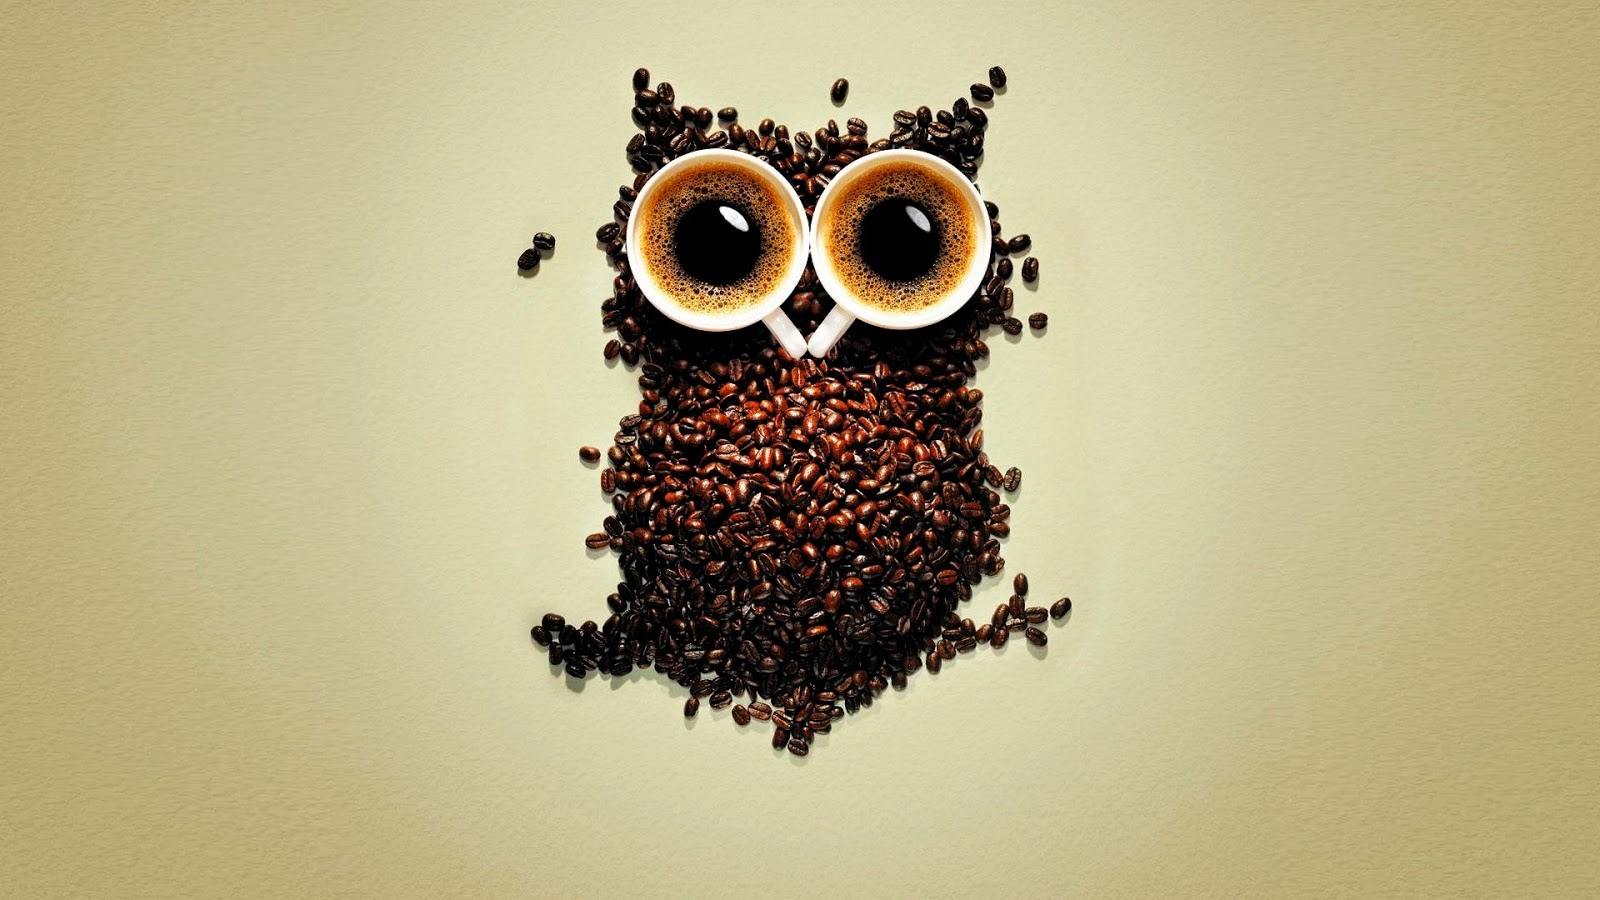 Abstract Coffee owl hd wallpaper